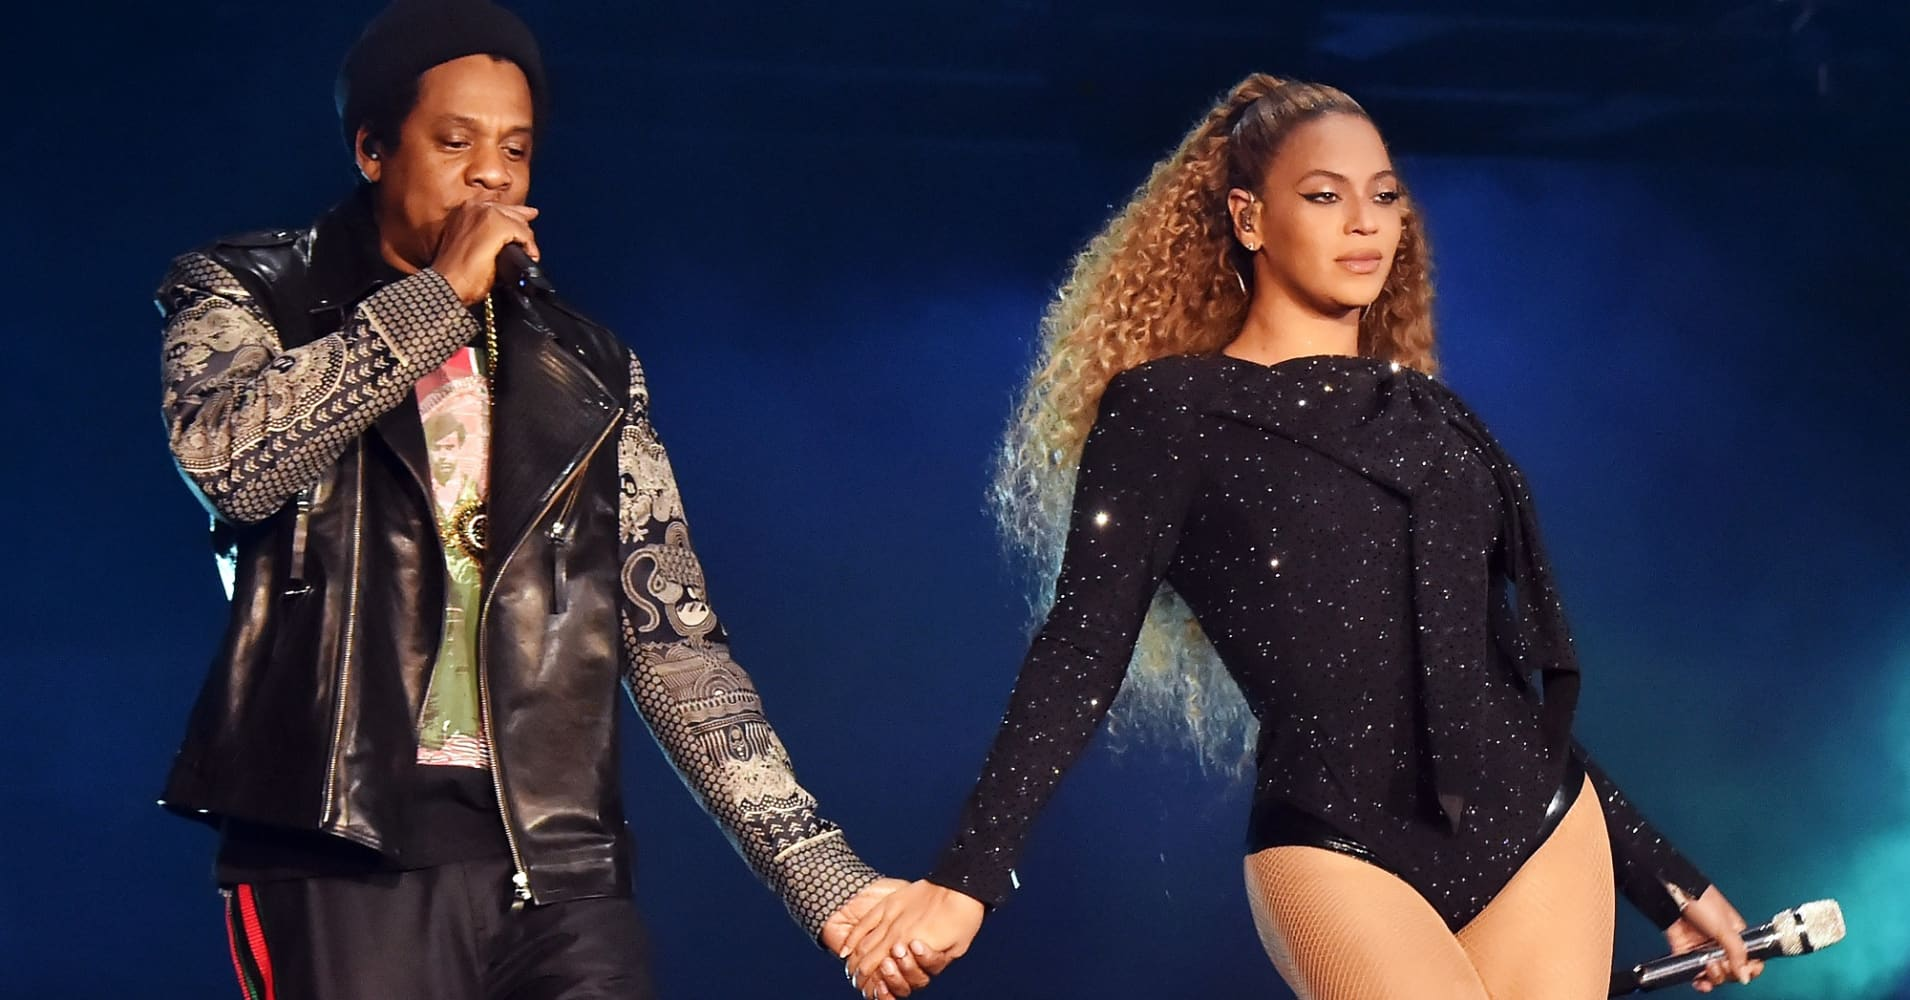 Jay-Z and Beyonce Knowles perform on stage during the 'On the Run II' tour opener at Principality Stadium